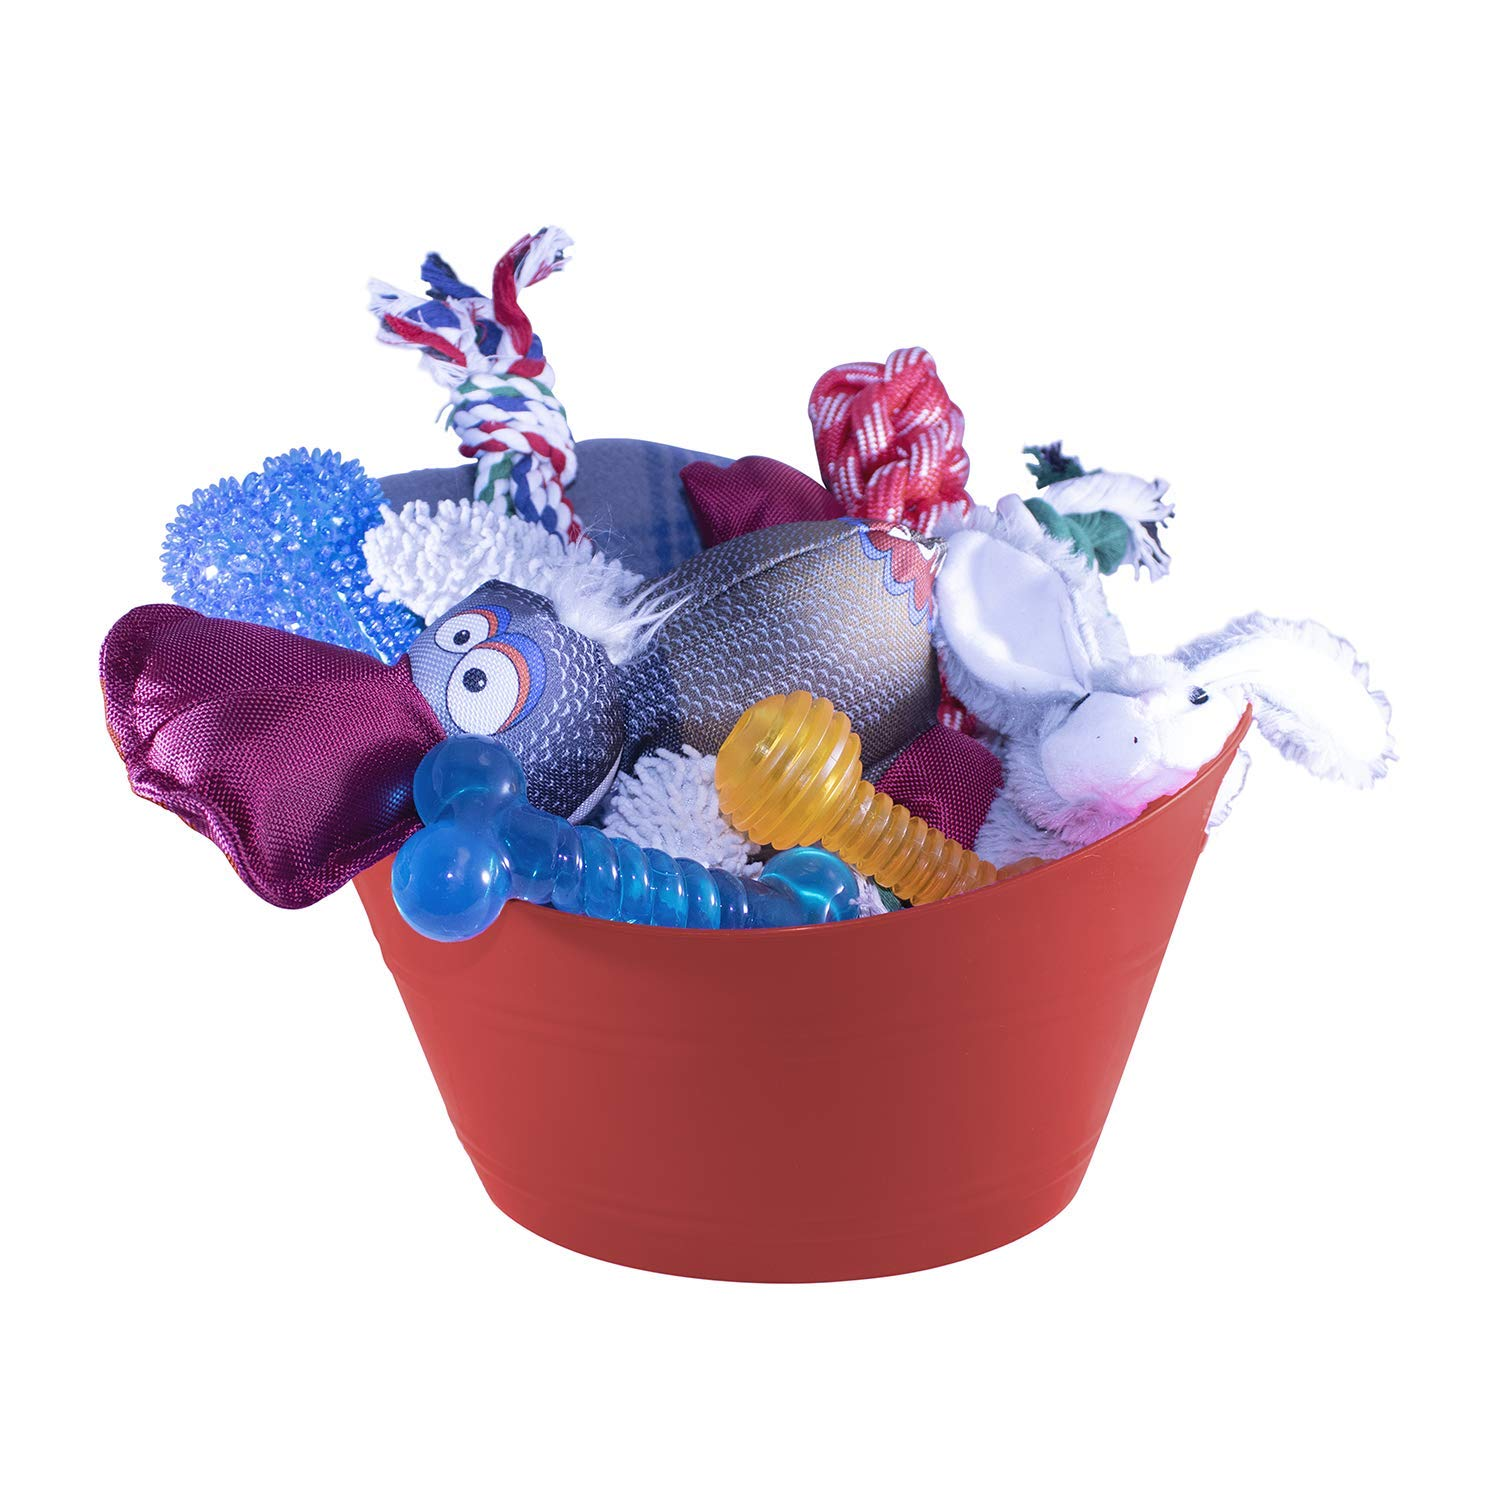 Just Chill'In Pets Dog Gift Basket with Durable Dog Toys - Dog Blanket 50 x 60 inches- Storage Basket Great for Easter Dog Gifts, Dog Birthdays, or Dog Lovers